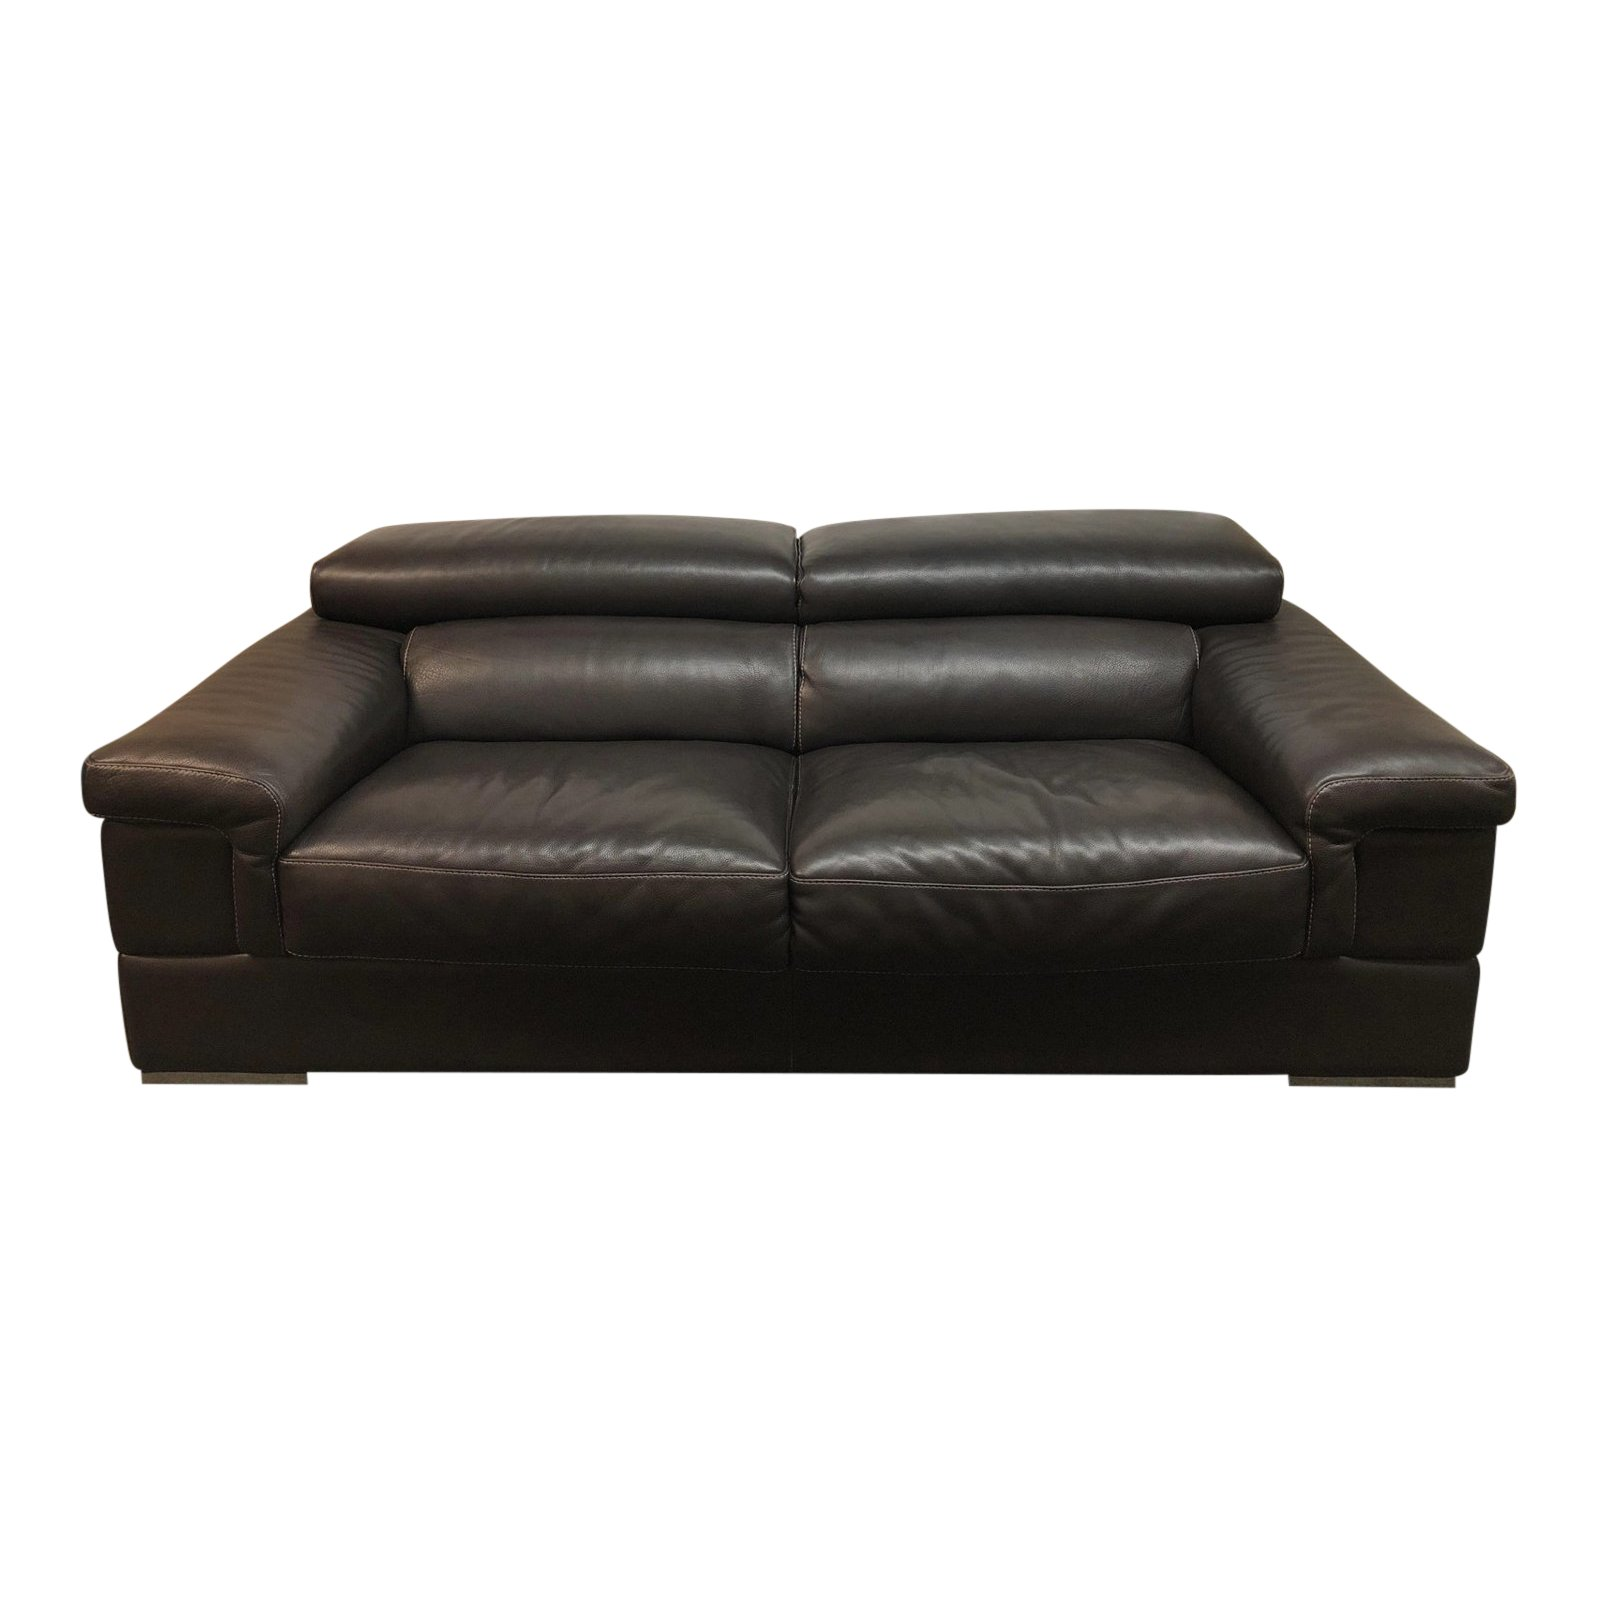 Divani Leather Sofa For Sale Incanto Group Divani Italian Leather Sofa Original Price 8 000